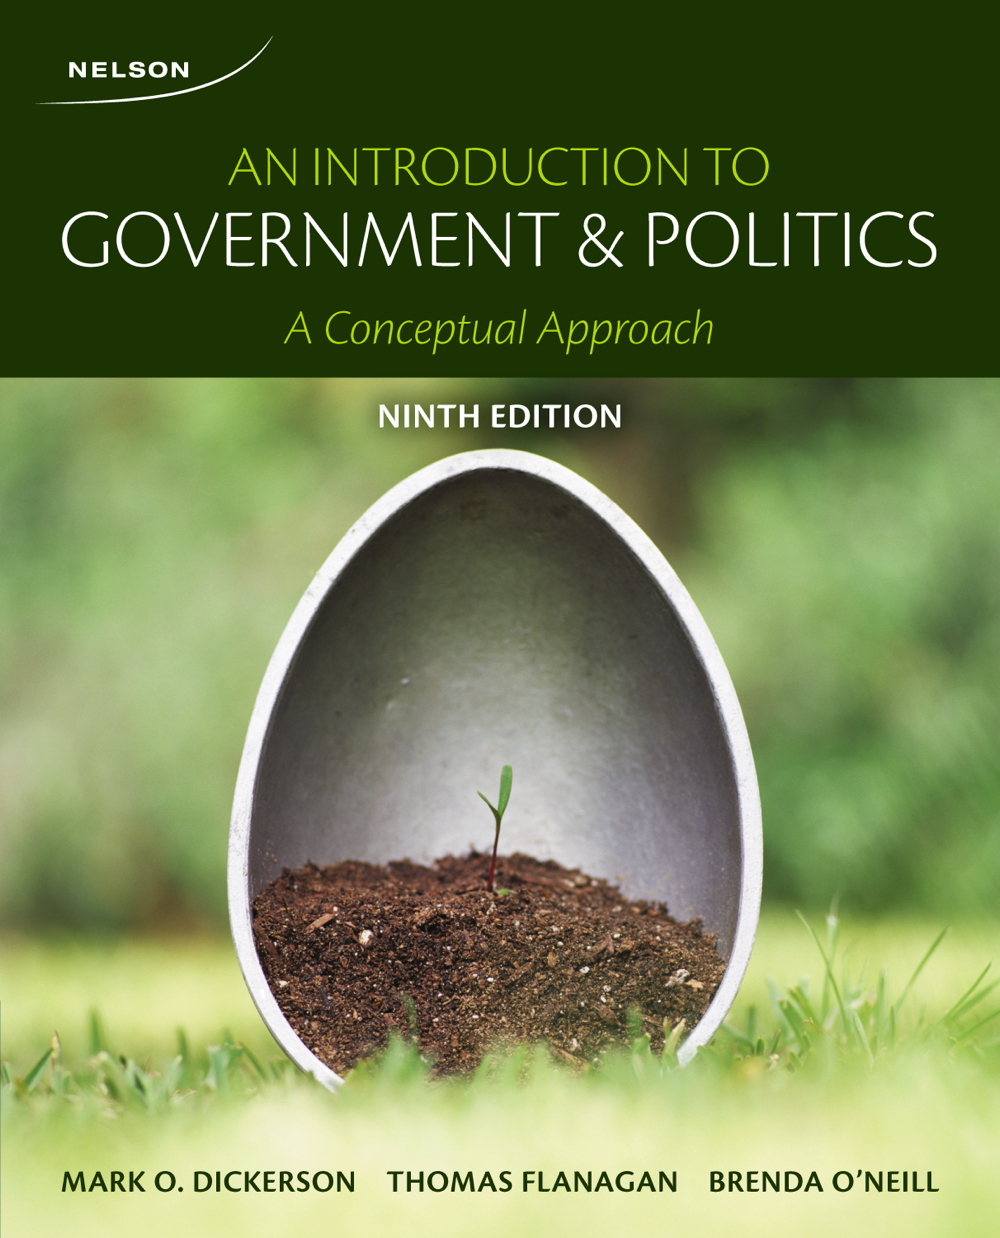 An Introduction to Government and Politics: A Conceptual Approach - 9780176507886